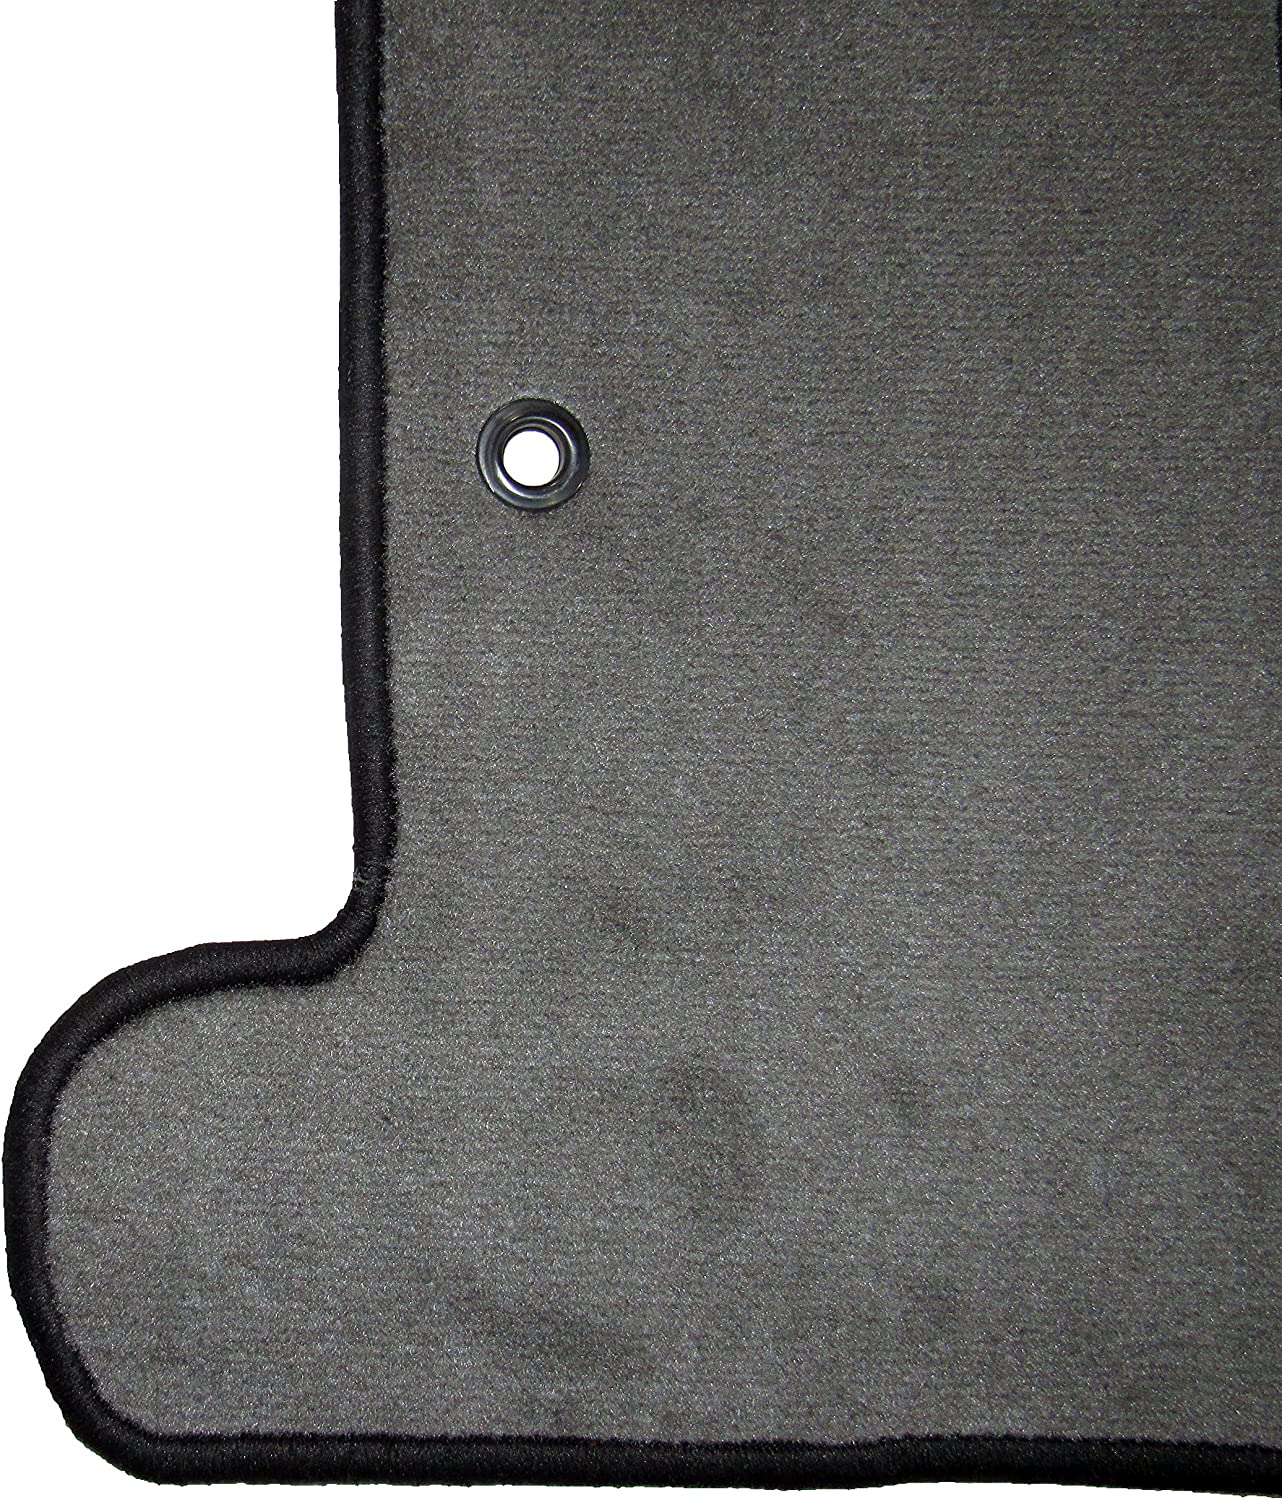 Coverking Custom Fit Rear Floor Mats for Select Chevrolet Traverse Models Black CFMDX1CH8586 Nylon Carpet